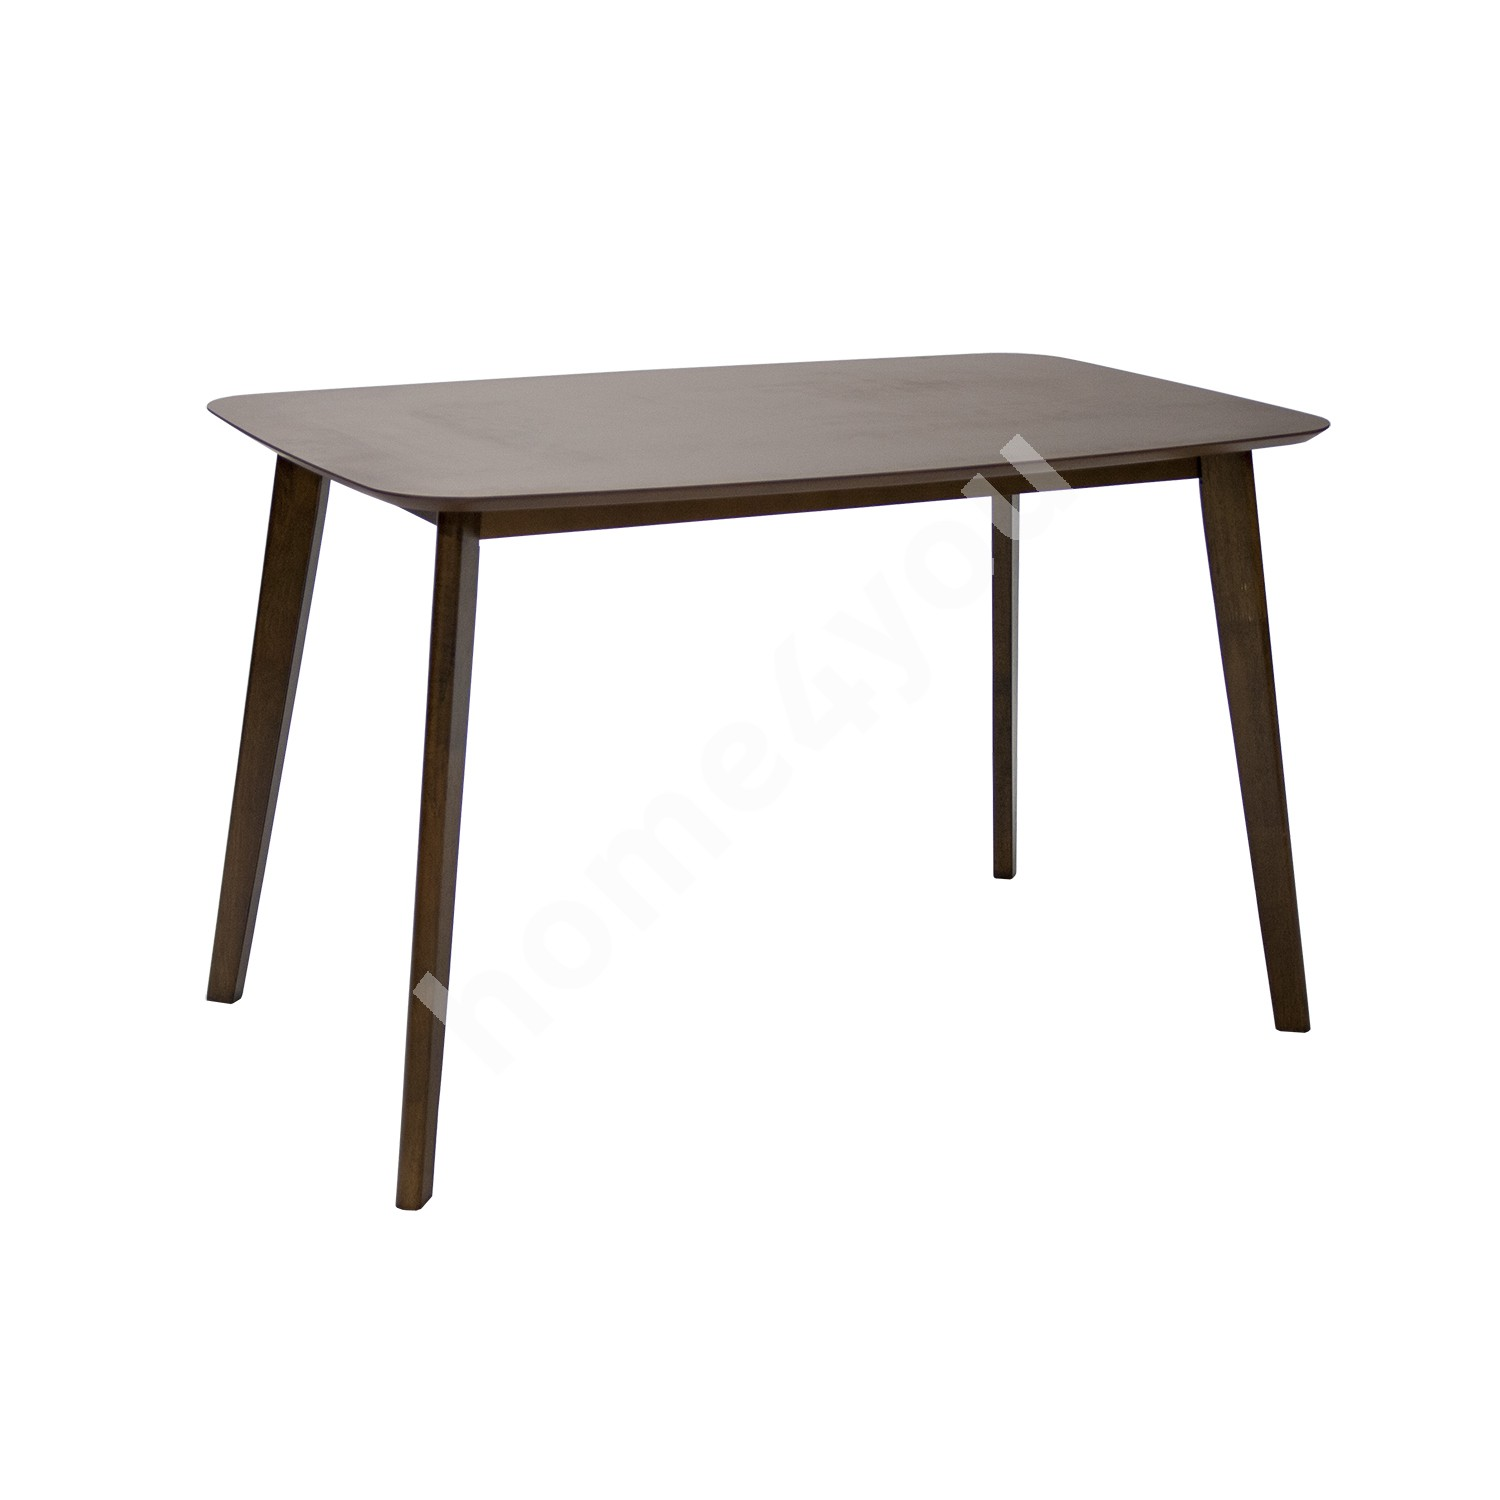 Dining table LUXY 120x75xH75cm, material: MDF with okume veneer / rubber wood, color: walnut, finishing: lacquered